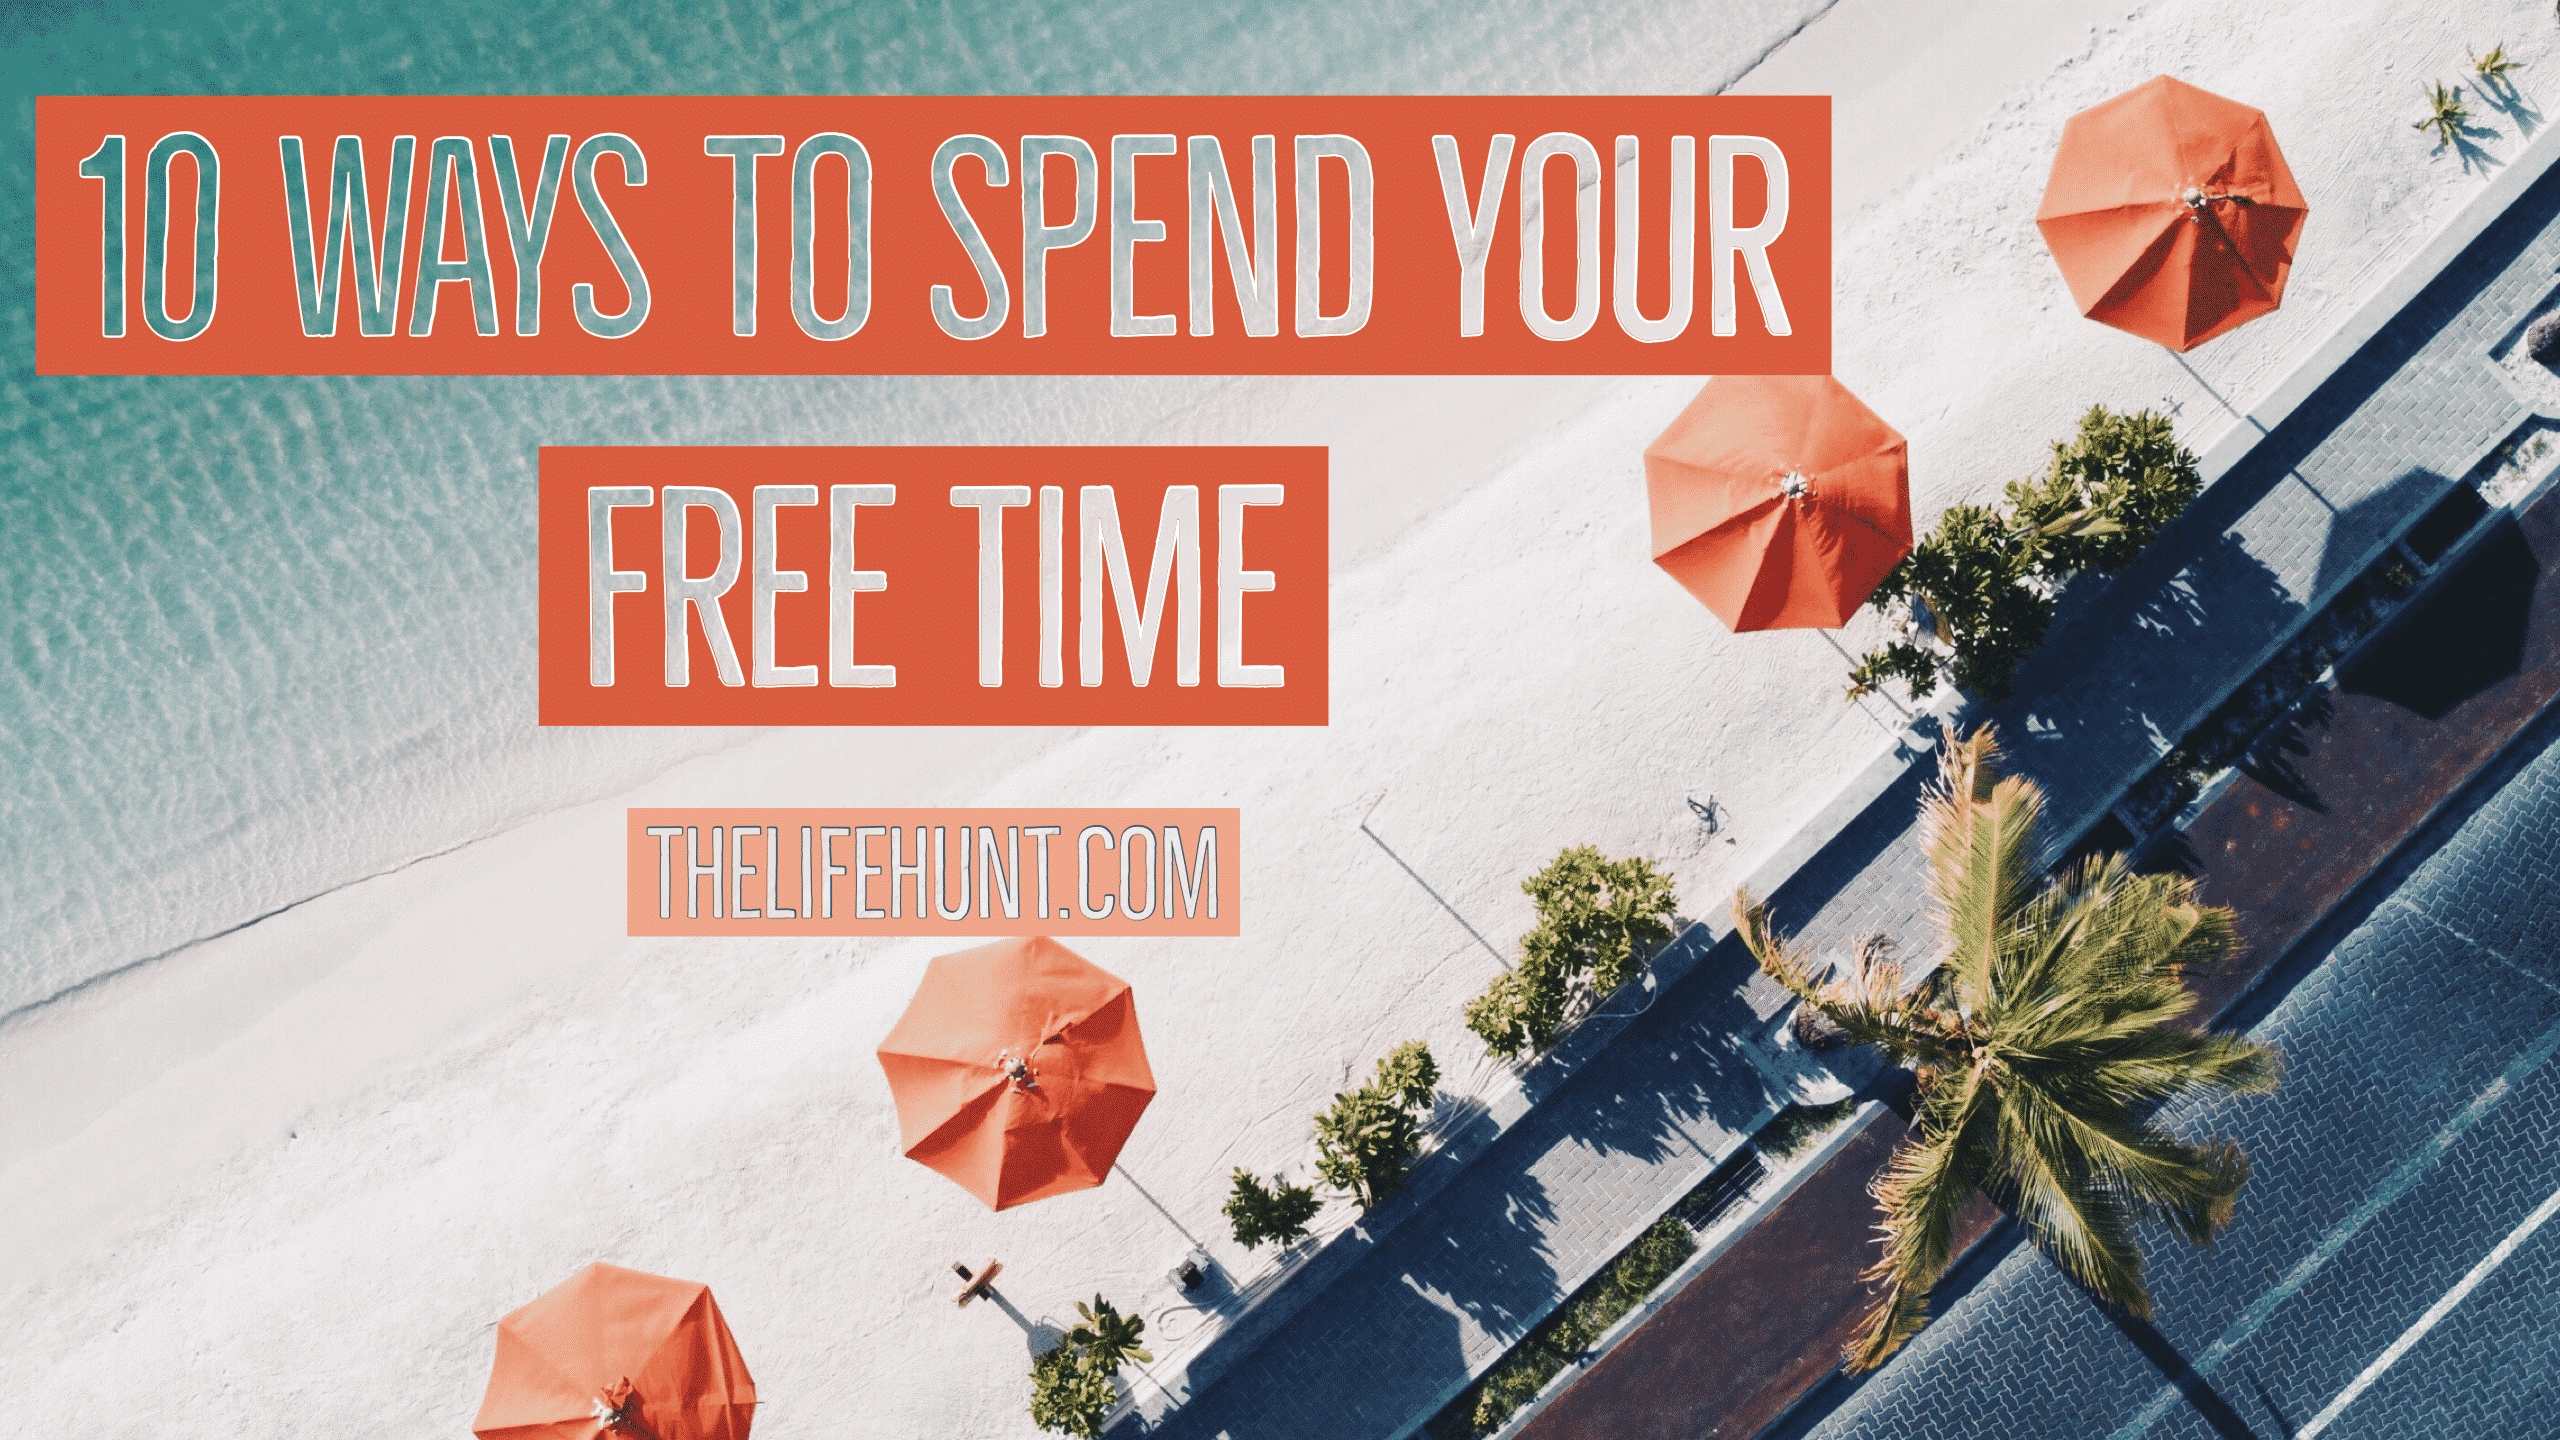 10 ways to spend your free time